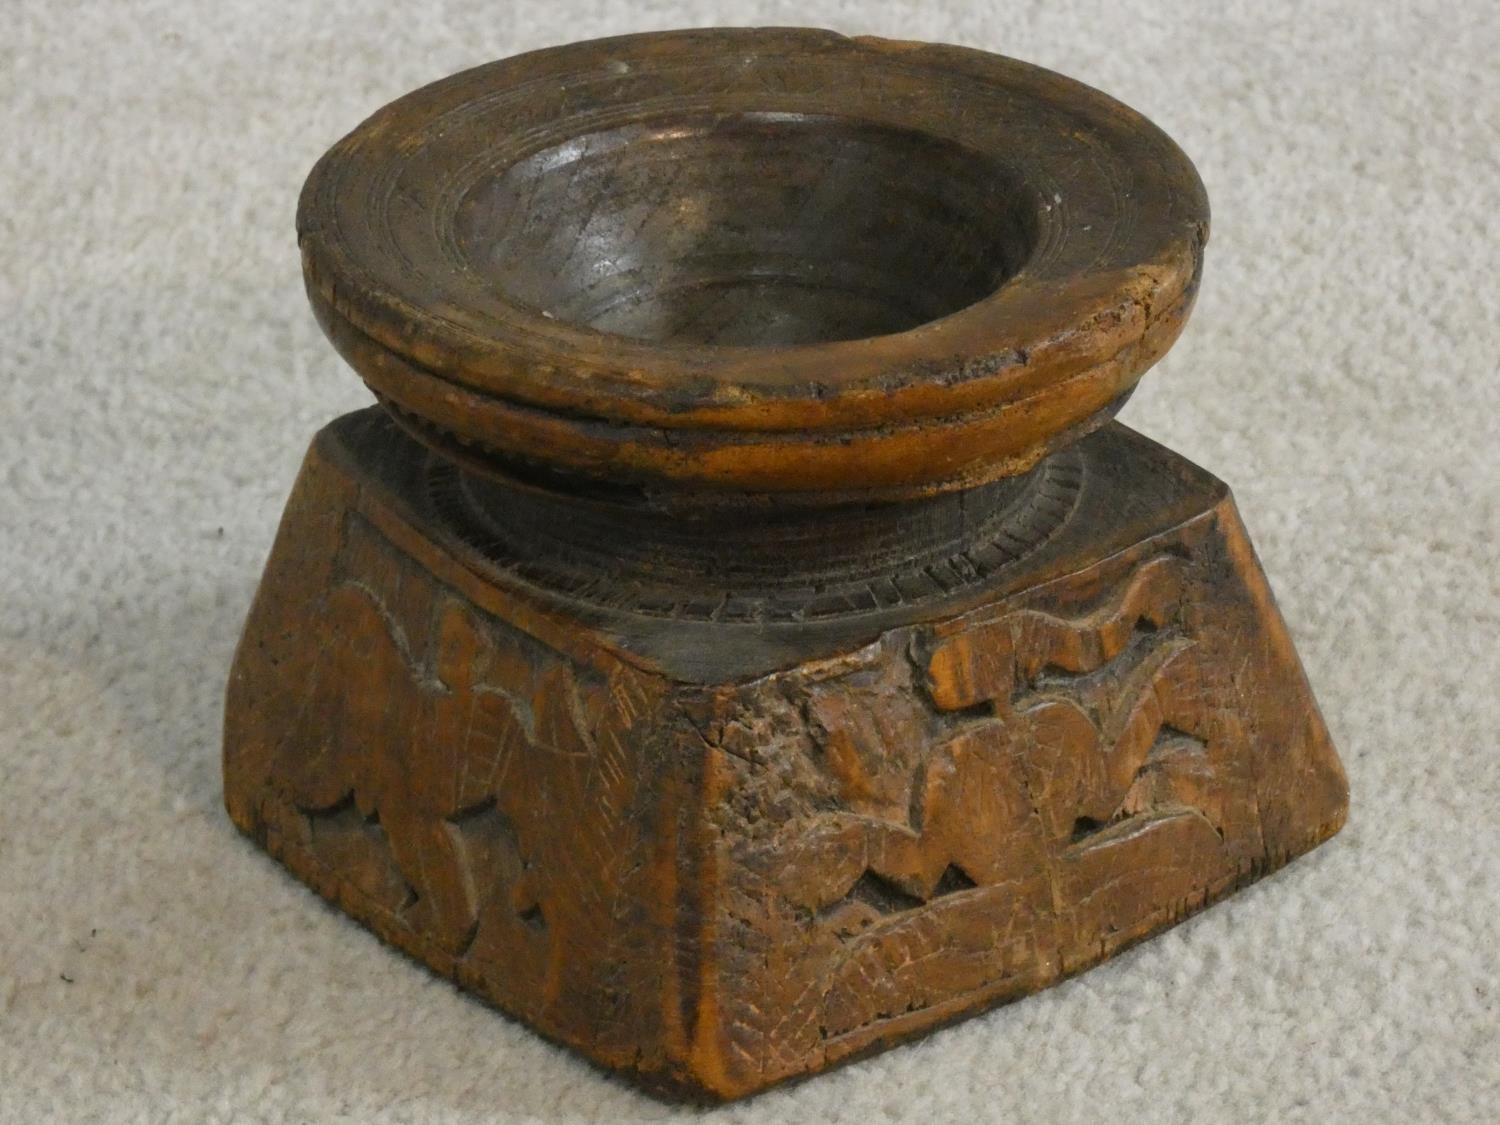 An antique Indian hardwood seed sowing tool with carved detailing of animals and people. H.13 W.17 - Image 2 of 8